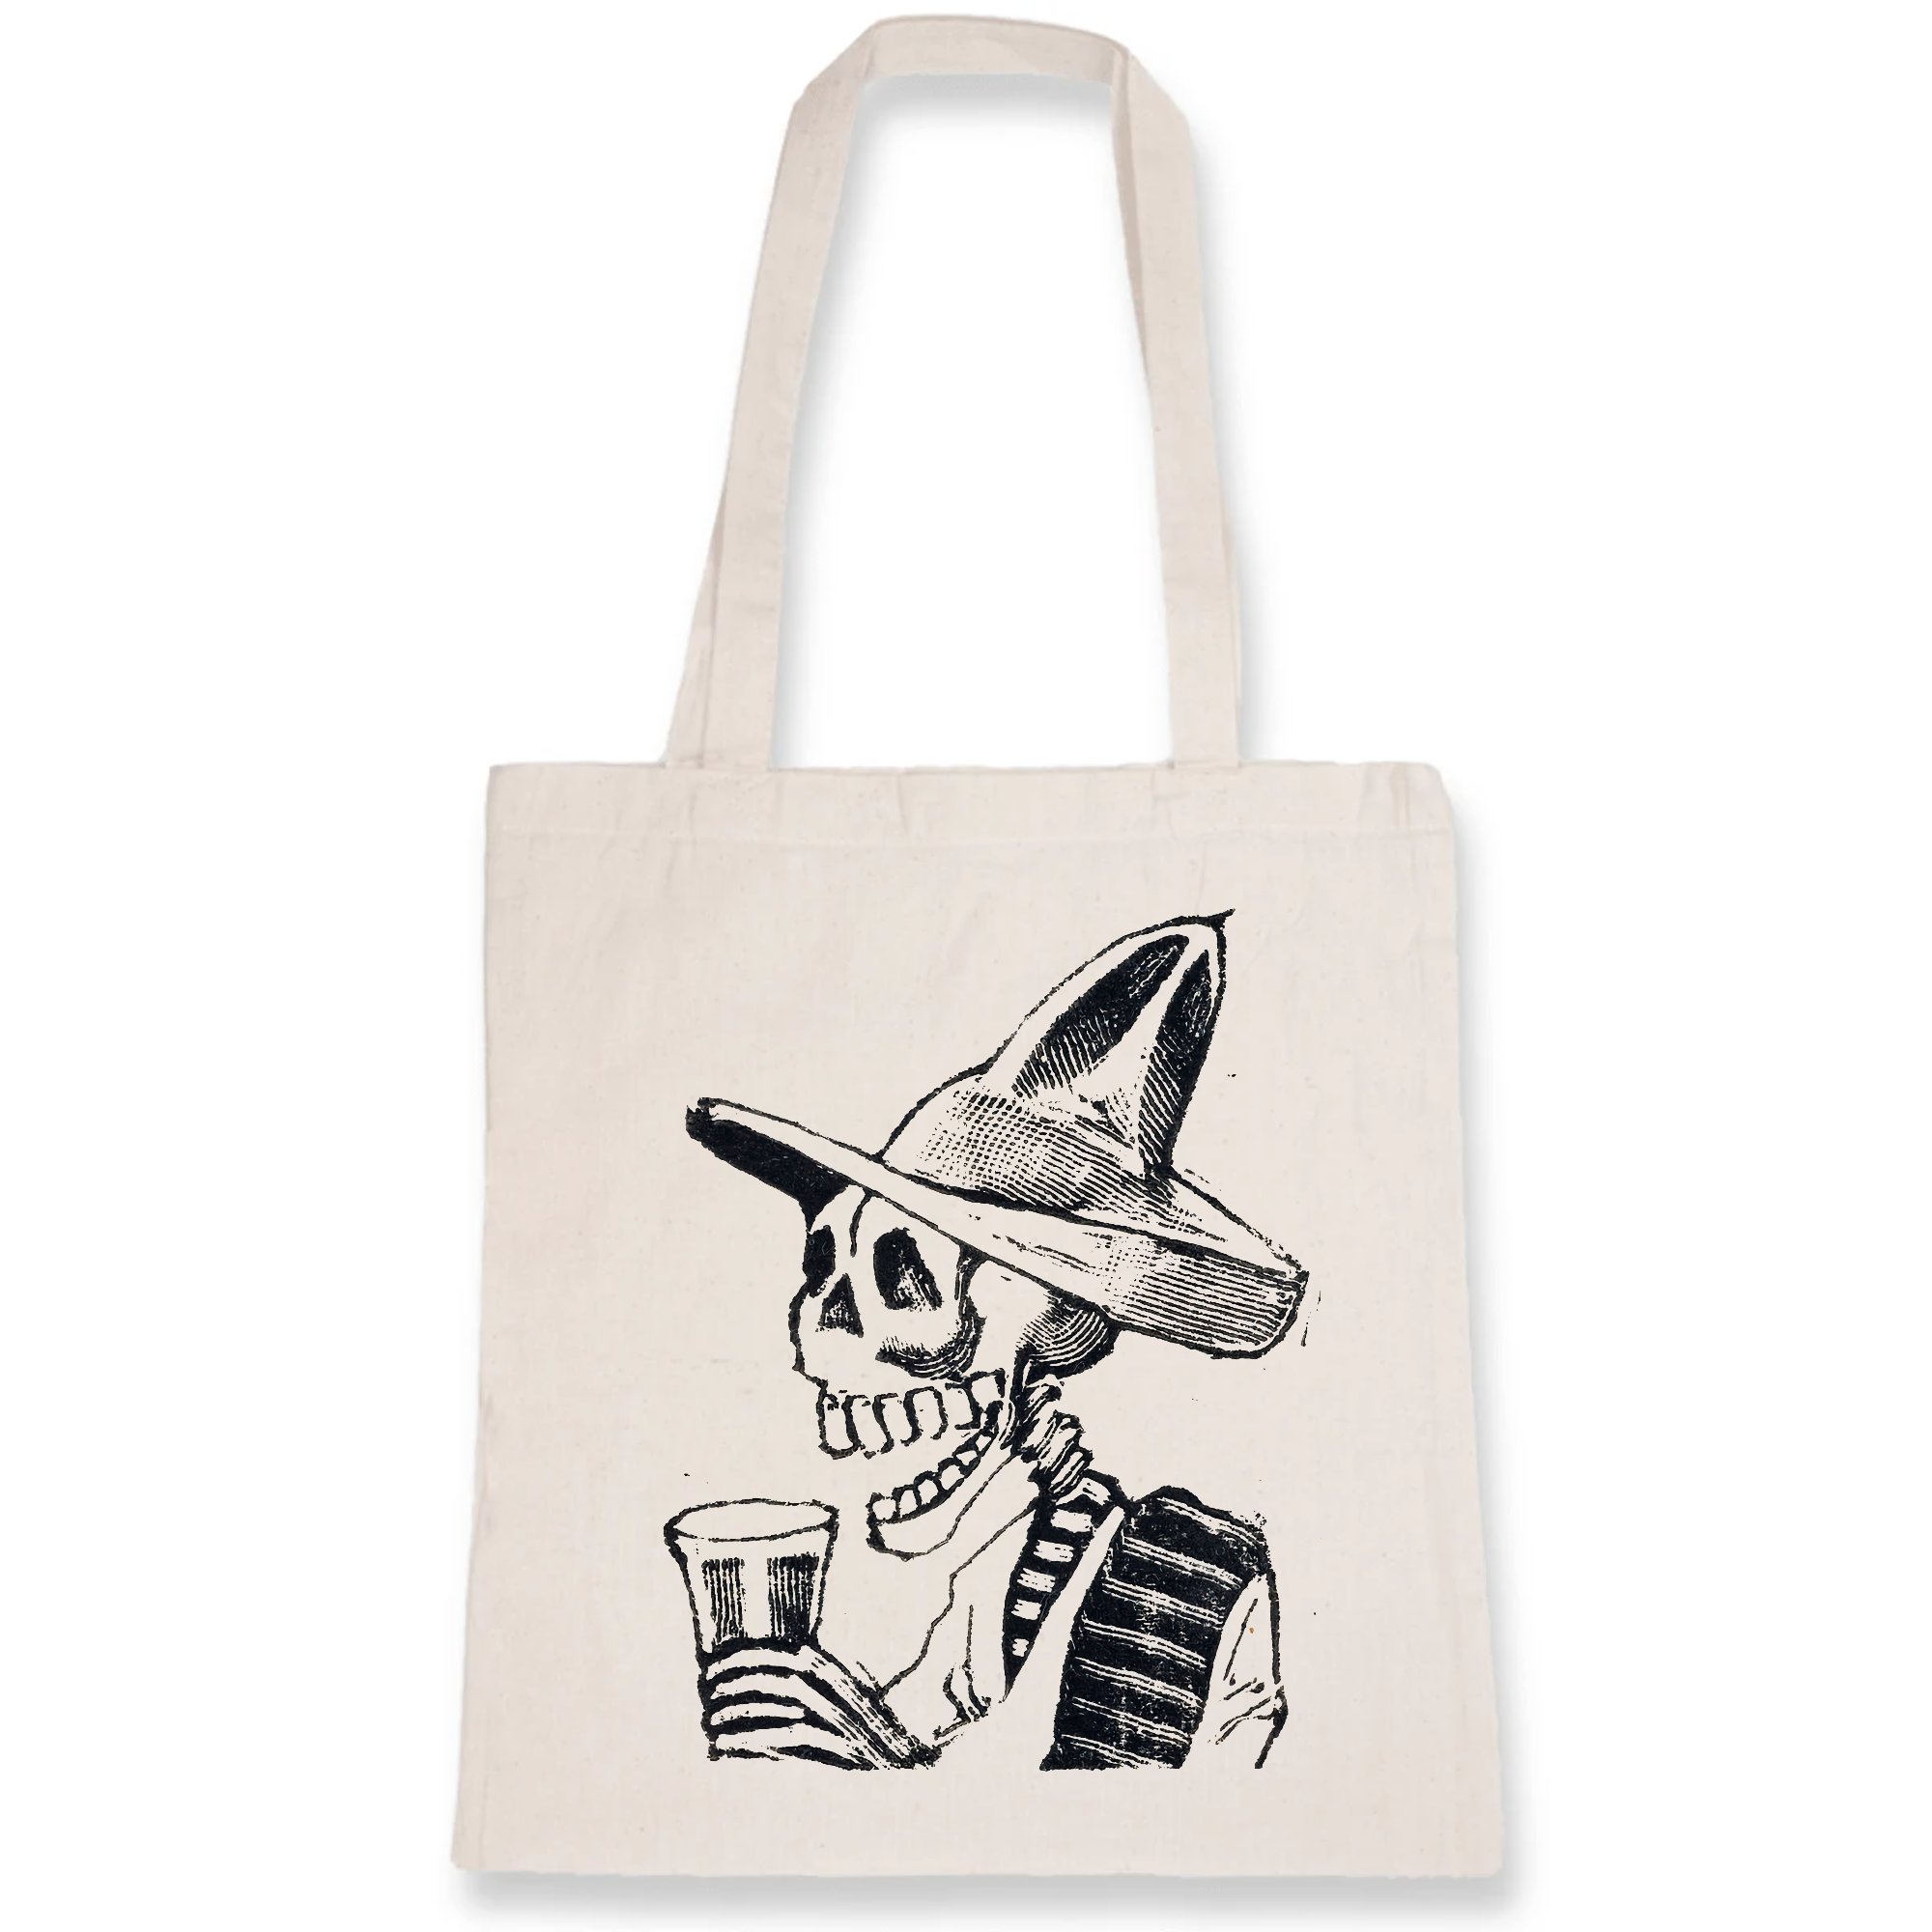 A 100% organic cotton Totye bag featuring a skeleton wearing a hat and having a drink (vignette for the feast of the dead) ca. 1890–1910 by José Guadalupe Posada.